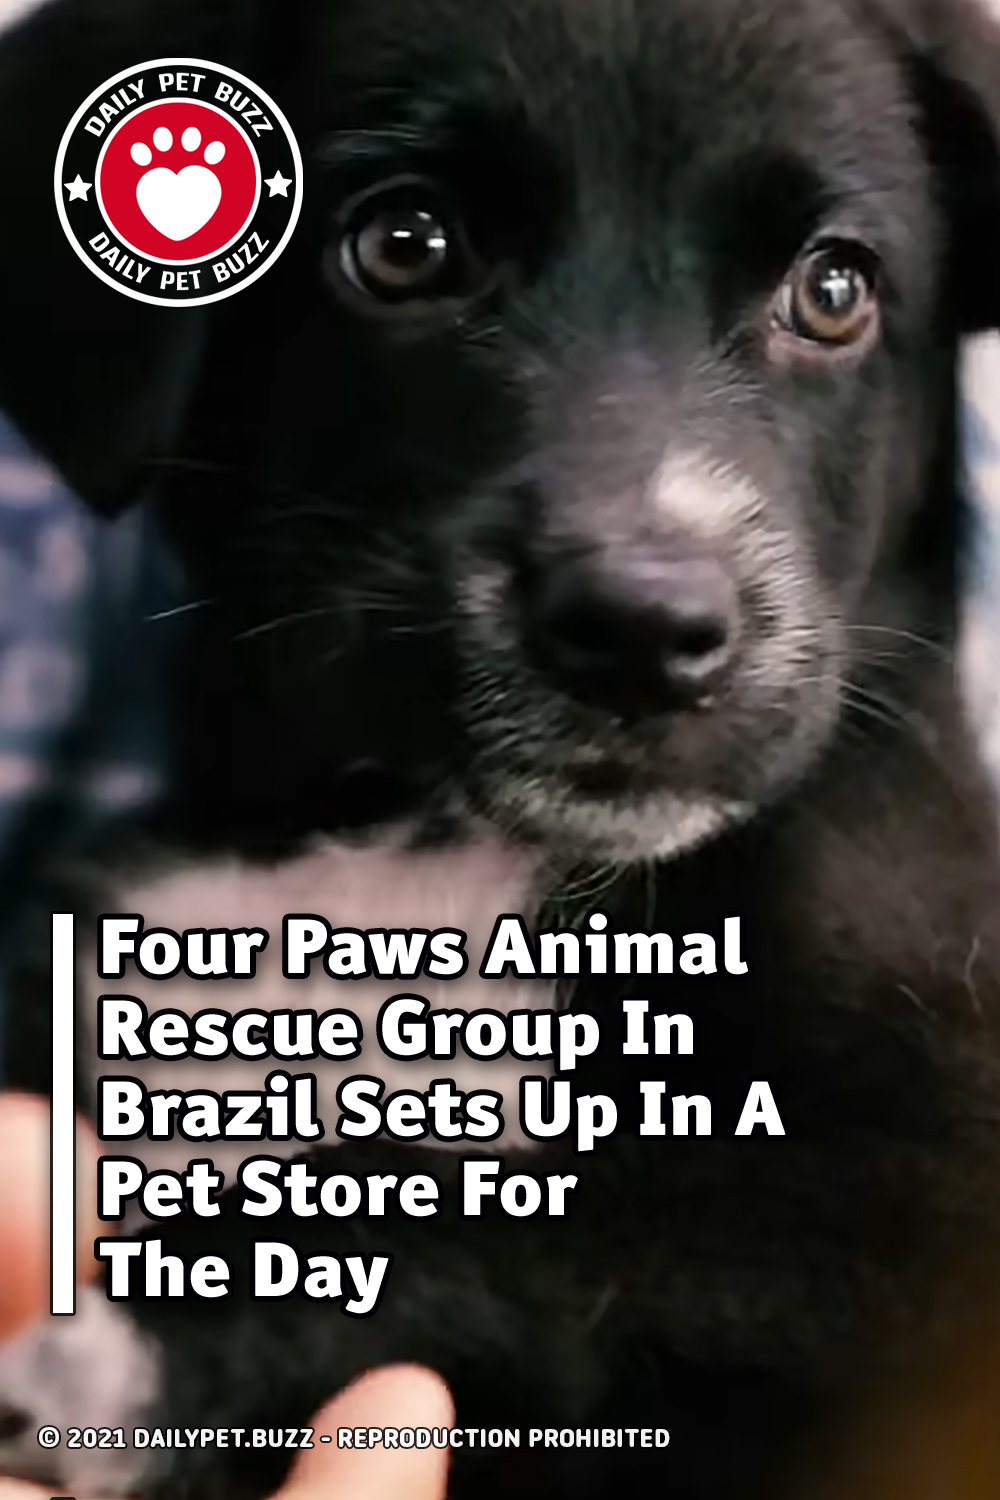 Four Paws Animal Rescue Group In Brazil Sets Up In A Pet Store For The Day